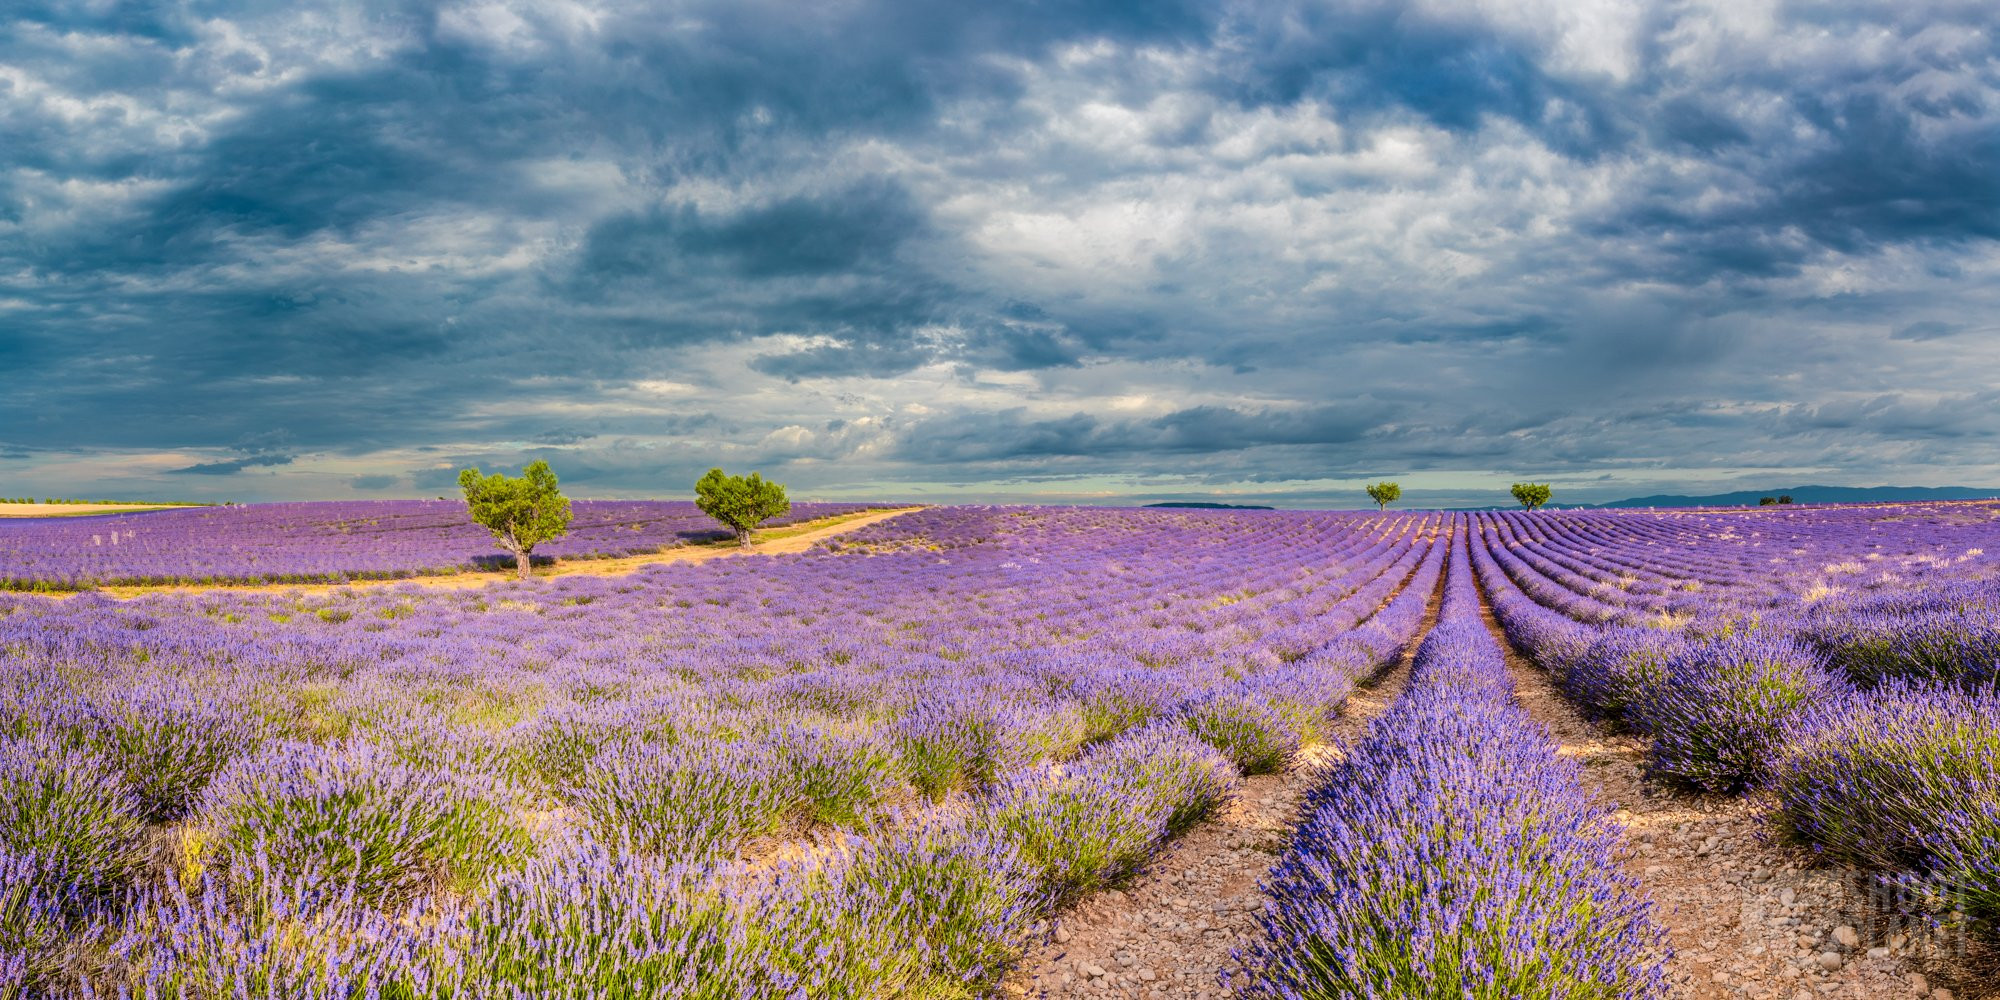 Valensole lavender field cloudy sunrise panorama, France